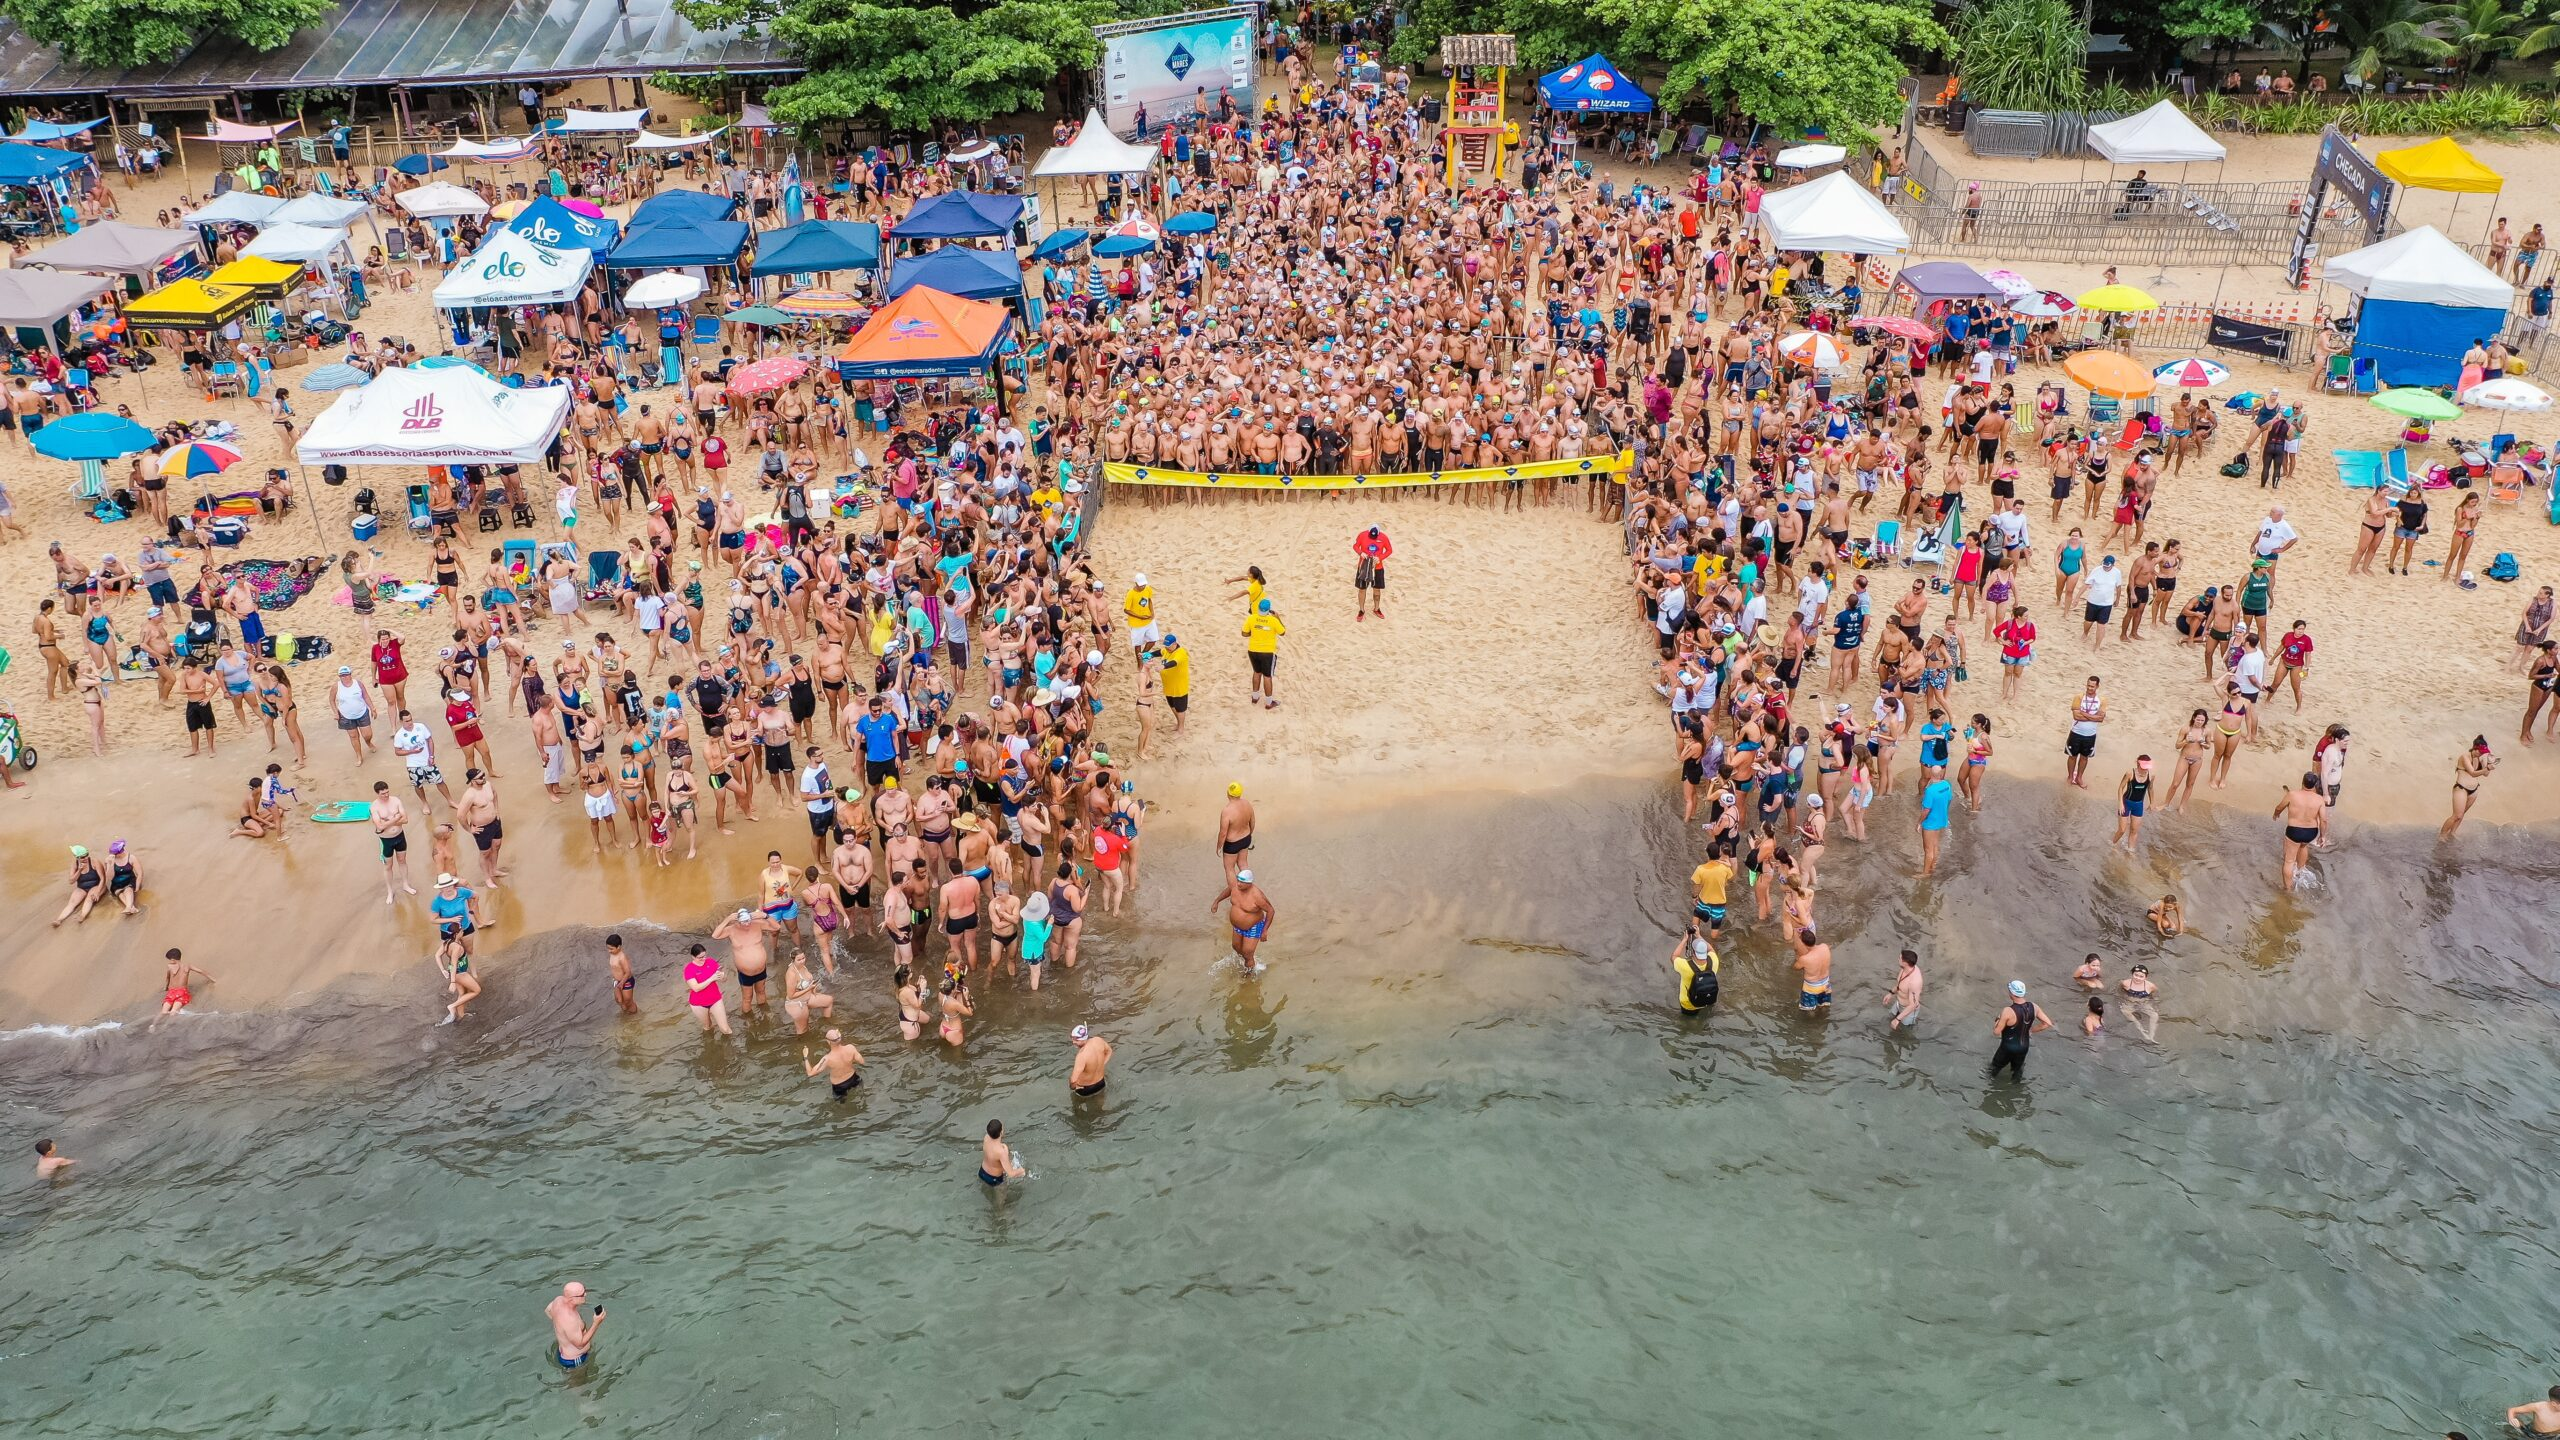 <p>People want a relaxing Easter; as a result, Mexico's beaches are expected to be crowded despite the pandemic. (Sergio Souza/Unsplash)</p>